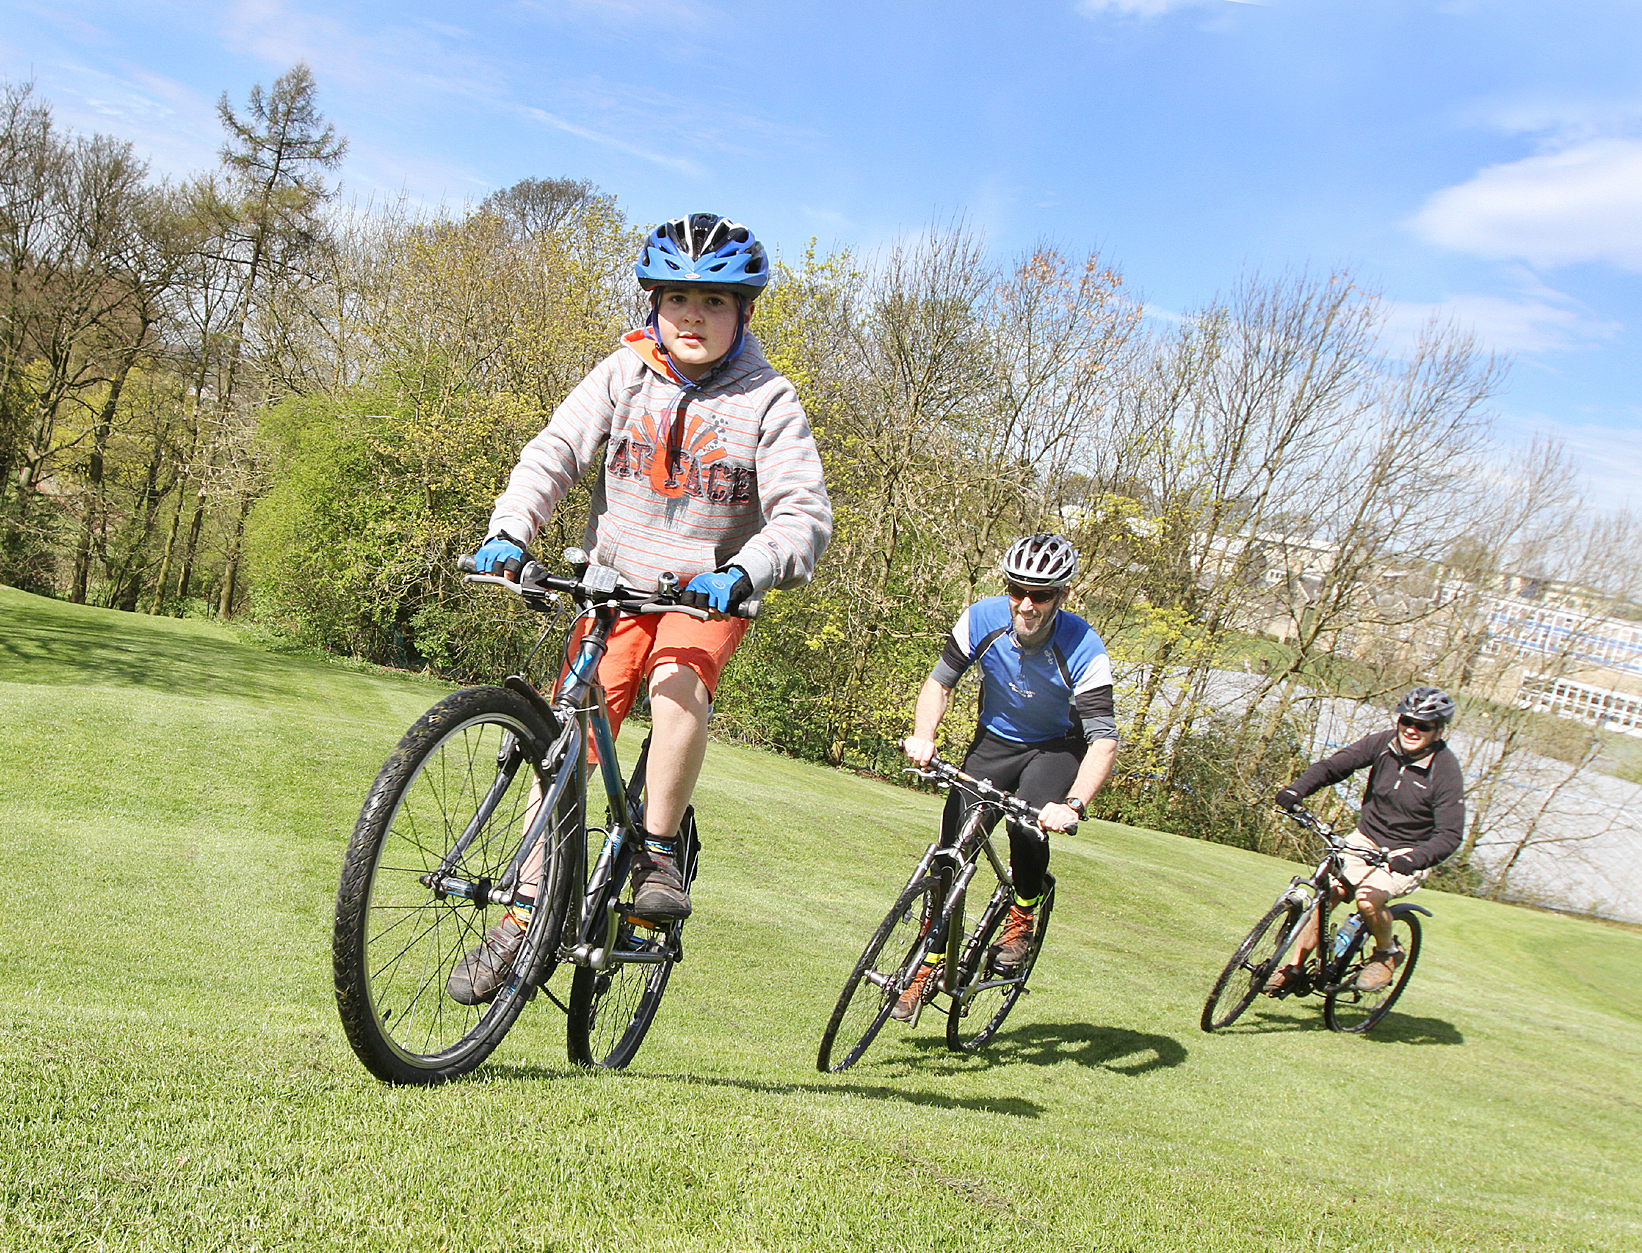 GUIDE: Craven District Council's Tour de France family bike riding trails are launched in Skipton's Aireville Park, with James Iannaccone, Bruce Dinsmore and Gerardo Innaccone trying out a route.